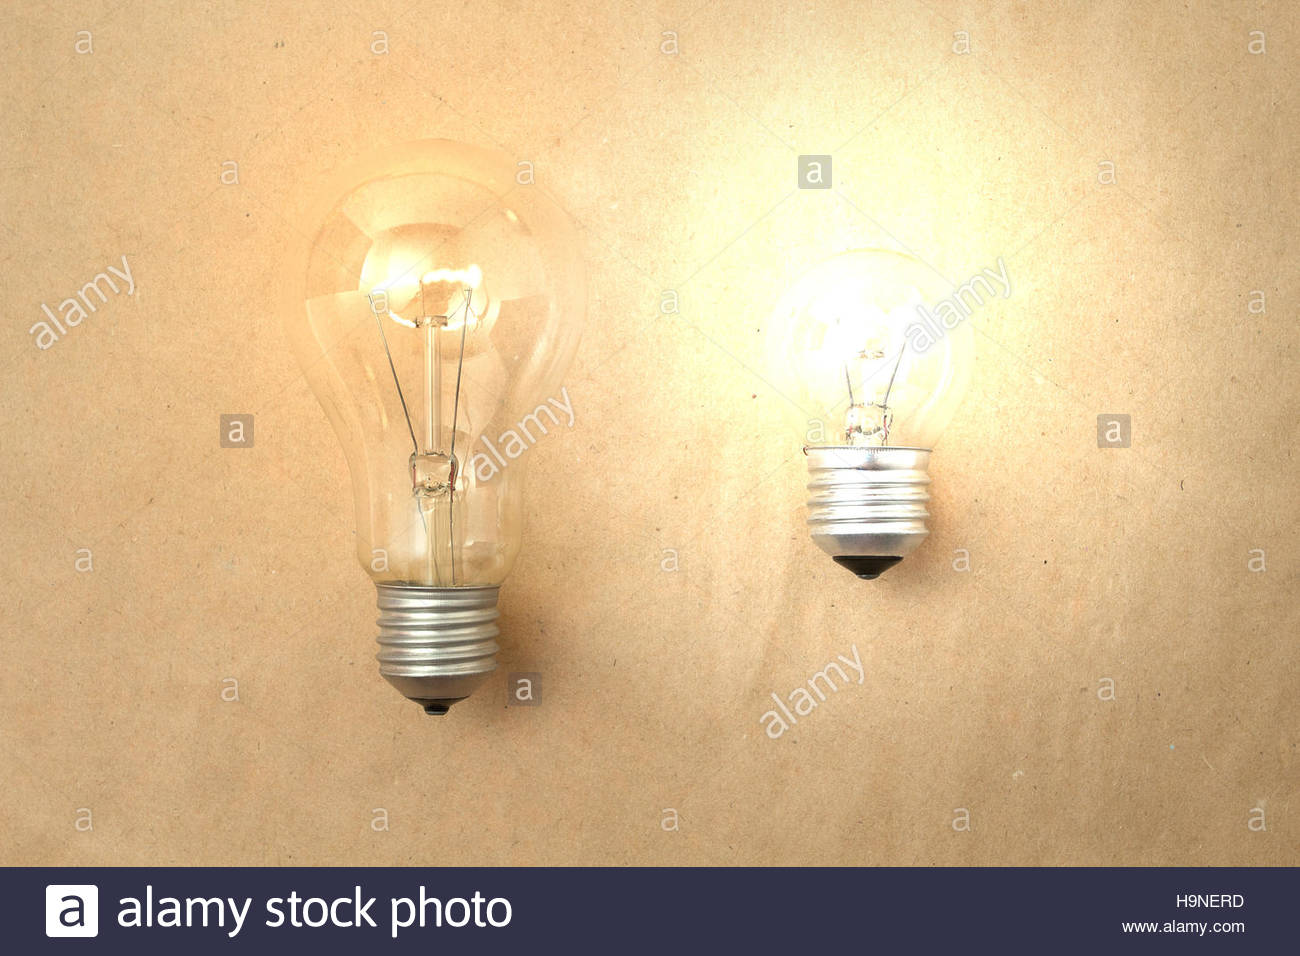 One Dim Light Bulb And Another Bright Light Bulb On Light Paper Background Idea